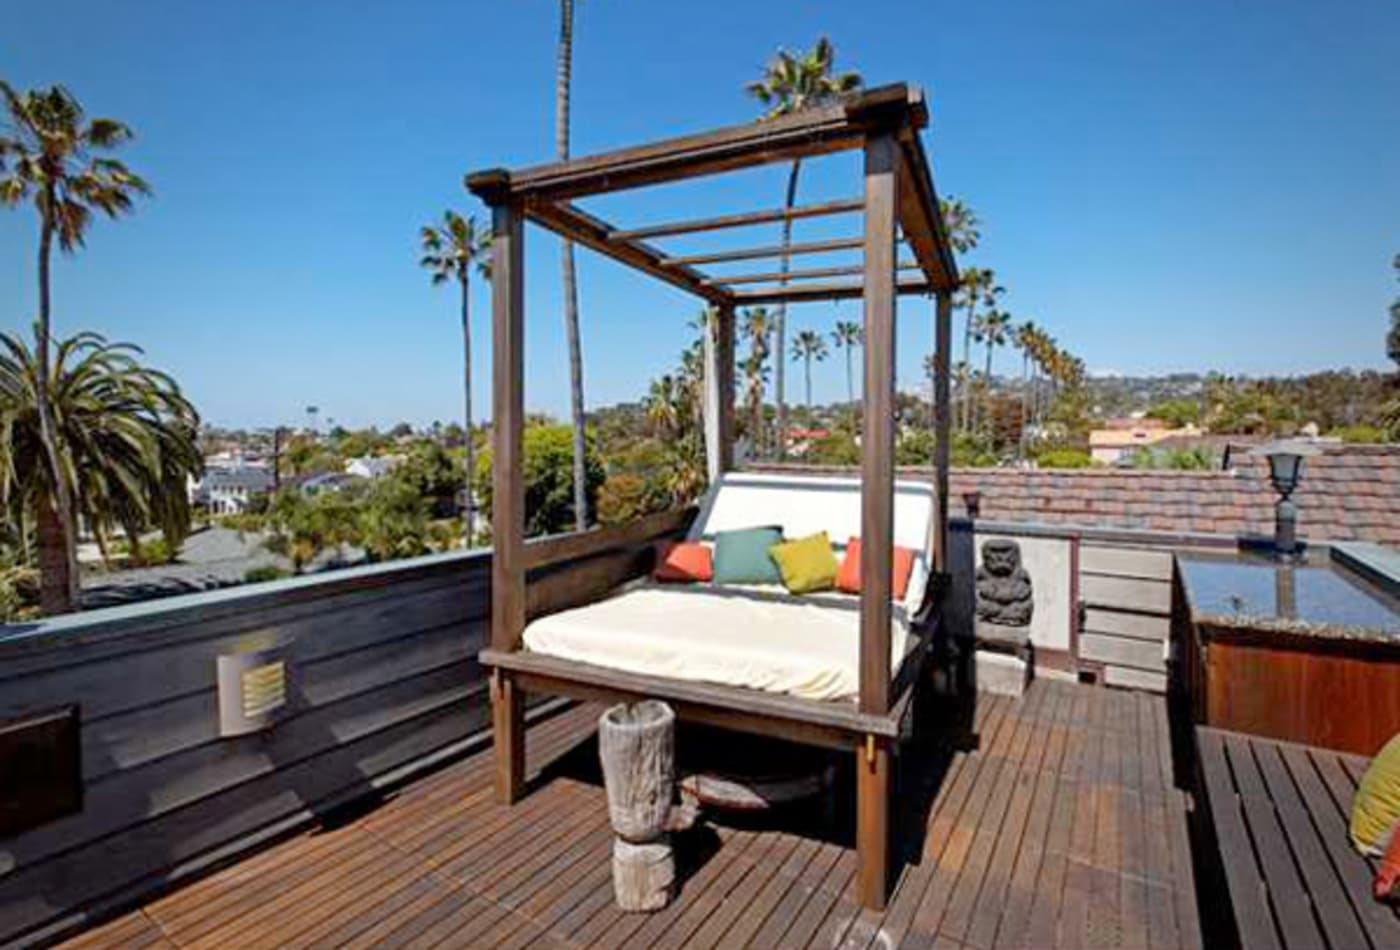 CNBC_extreme_rooftops_lajolla2.jpg